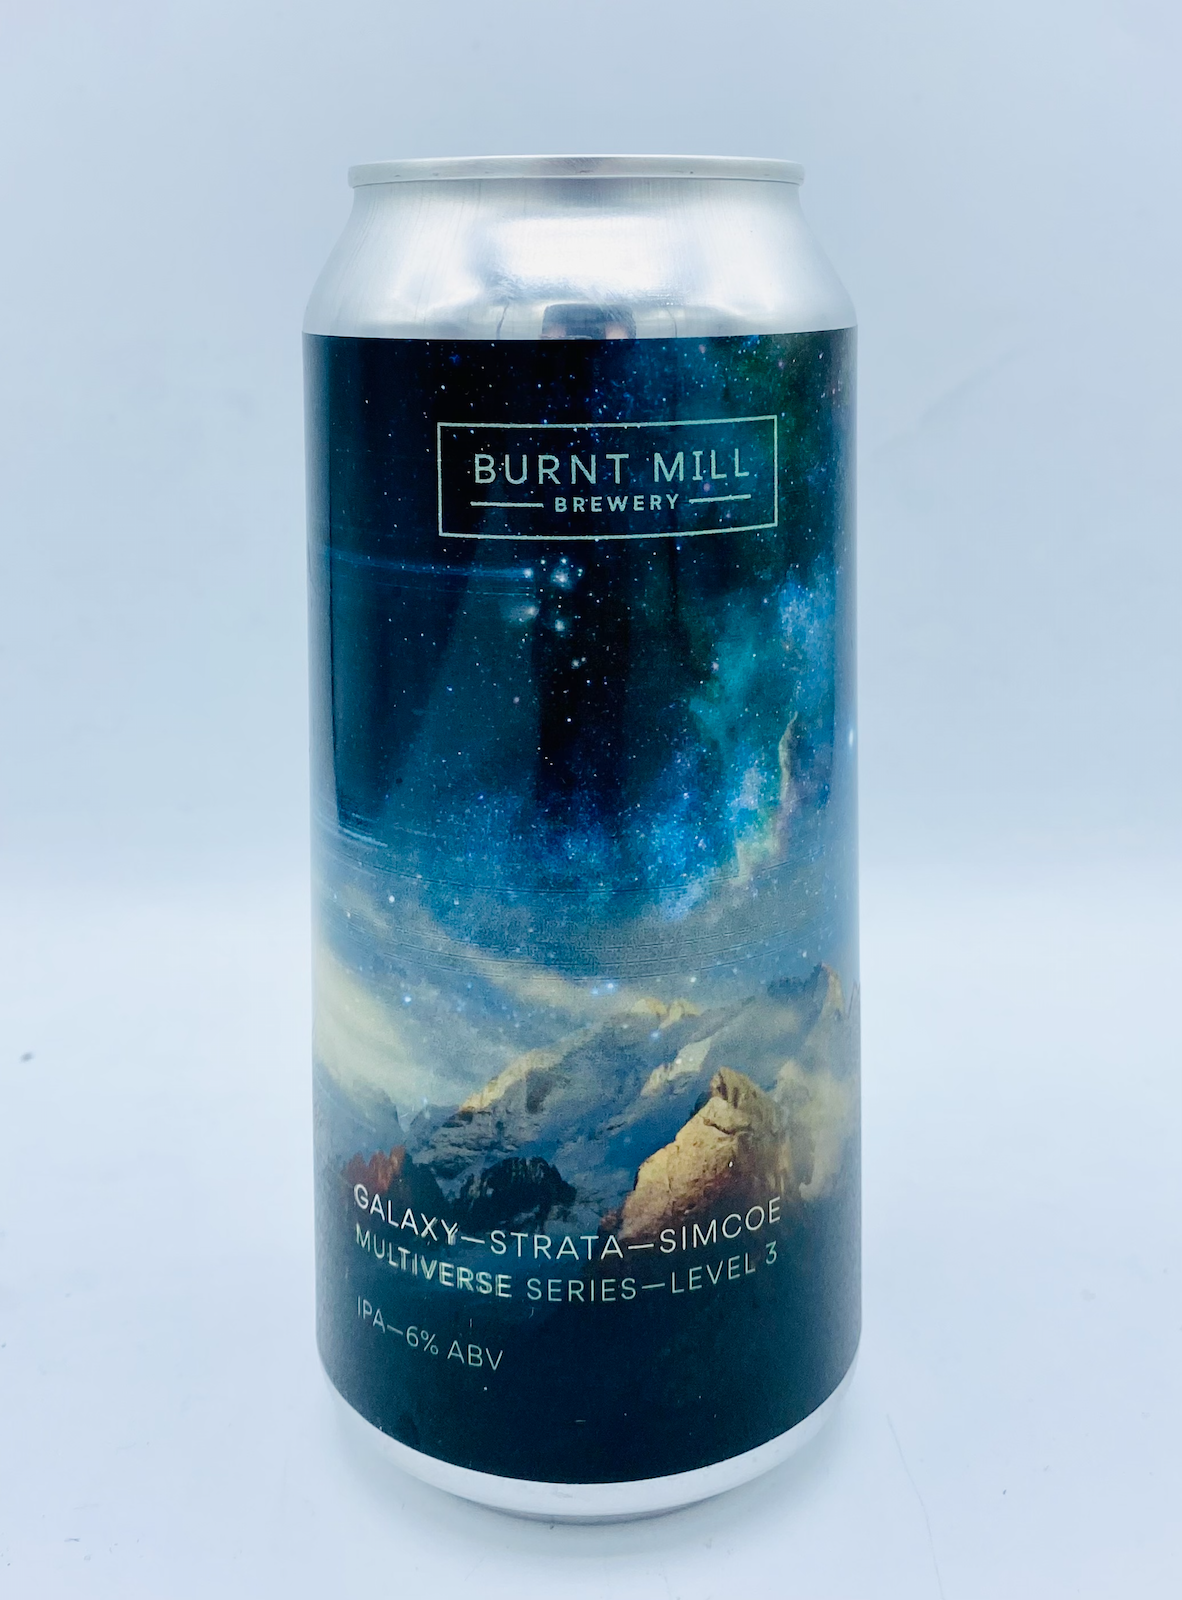 Burnt Mill Brewery - Multiverse NE IPA Series - Level 03 - 6%